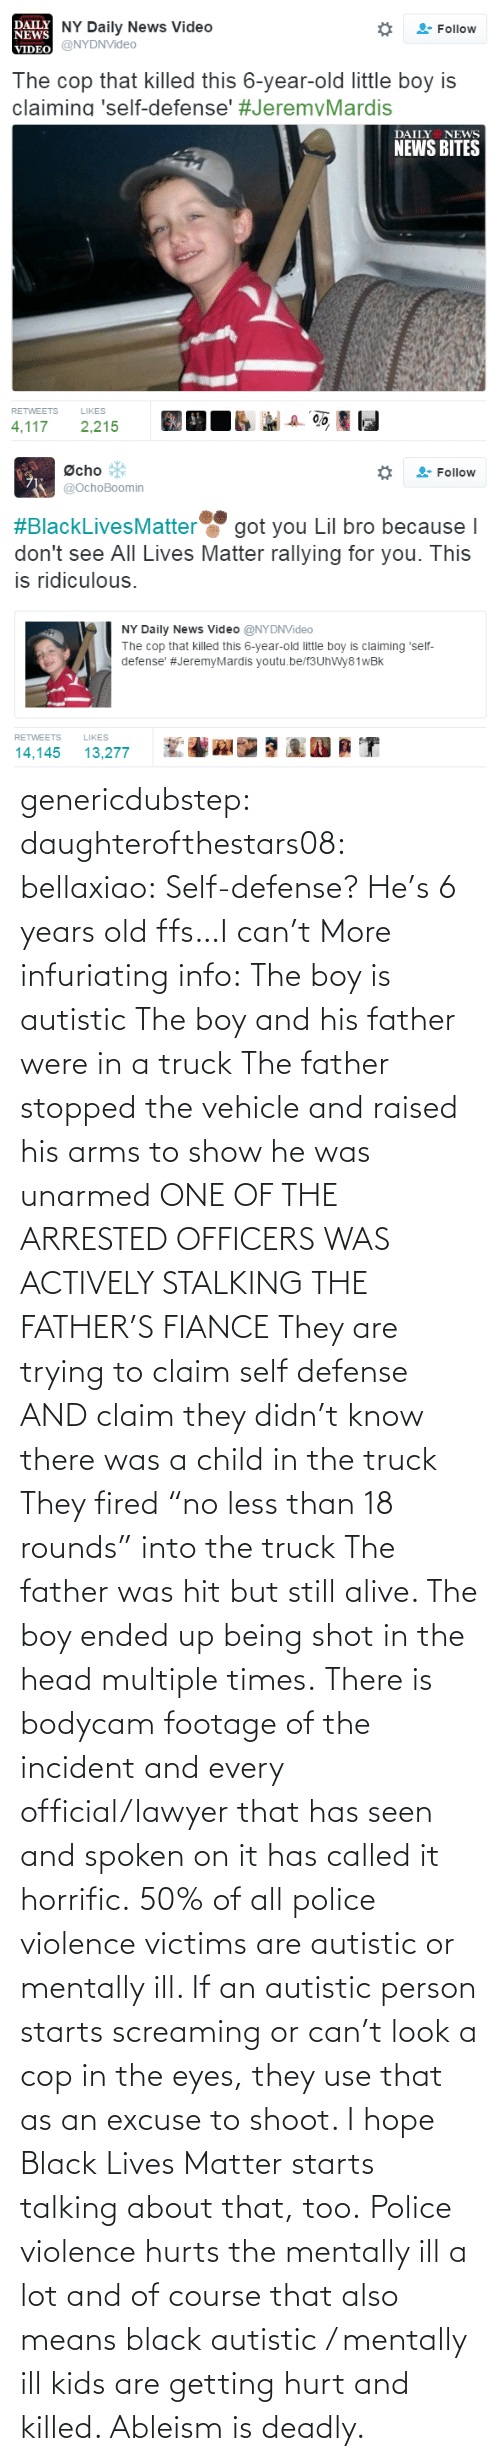 "Alive, Black Lives Matter, and Head: genericdubstep: daughterofthestars08:  bellaxiao:  Self-defense? He's 6 years old ffs…I can't  More infuriating info: The boy is autistic The boy and his father were in a truck The father stopped the vehicle and raised his arms to show he was unarmed ONE OF THE ARRESTED OFFICERS WAS ACTIVELY STALKING THE FATHER'S FIANCE They are trying to claim self defense AND claim they didn't know there was a child in the truck They fired ""no less than 18 rounds"" into the truck The father was hit but still alive. The boy ended up being shot in the head multiple times. There is bodycam footage of the incident and every official/lawyer that has seen and spoken on it has called it horrific.  50% of all police violence victims are autistic or mentally ill. If an autistic person starts screaming or can't look a cop in the eyes, they use that as an excuse to shoot. I hope Black Lives Matter starts talking about that, too. Police violence hurts the mentally ill a lot and of course that also means black autistic / mentally ill kids are getting hurt and killed. Ableism is deadly."